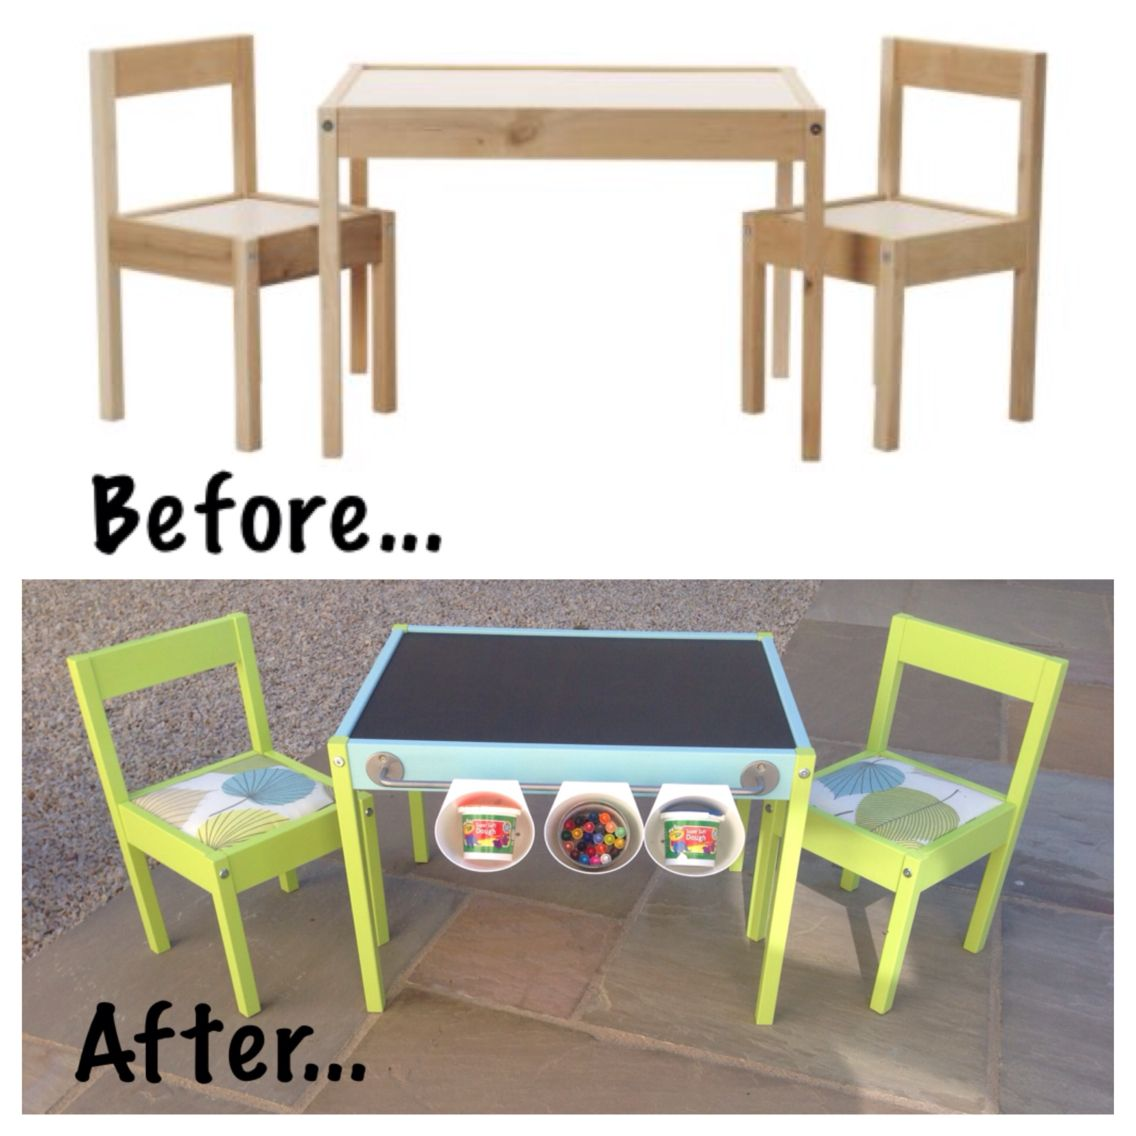 Ikea Hack For The Children S Latt Table And Chairs My First I Enjoyed Every Minute Of It Love Finished Product Too